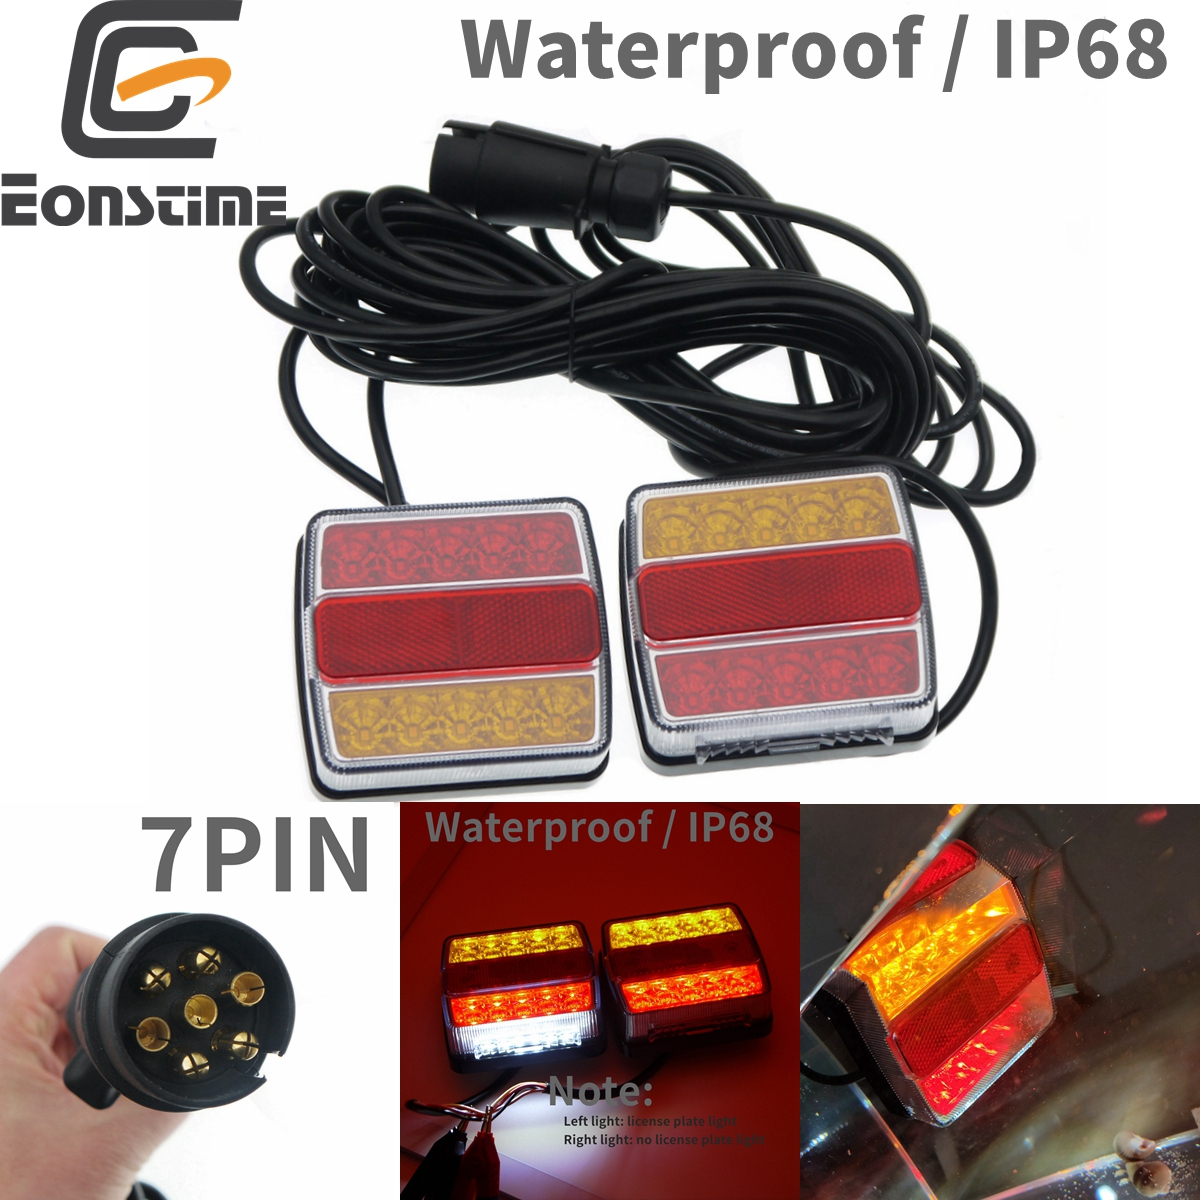 Eonstime 1 Set 12V 10m 10 LED Trailer Light Kit tail light Trailer Lights License Plate Light Lamp high quality waterproof IP68Eonstime 1 Set 12V 10m 10 LED Trailer Light Kit tail light Trailer Lights License Plate Light Lamp high quality waterproof IP68